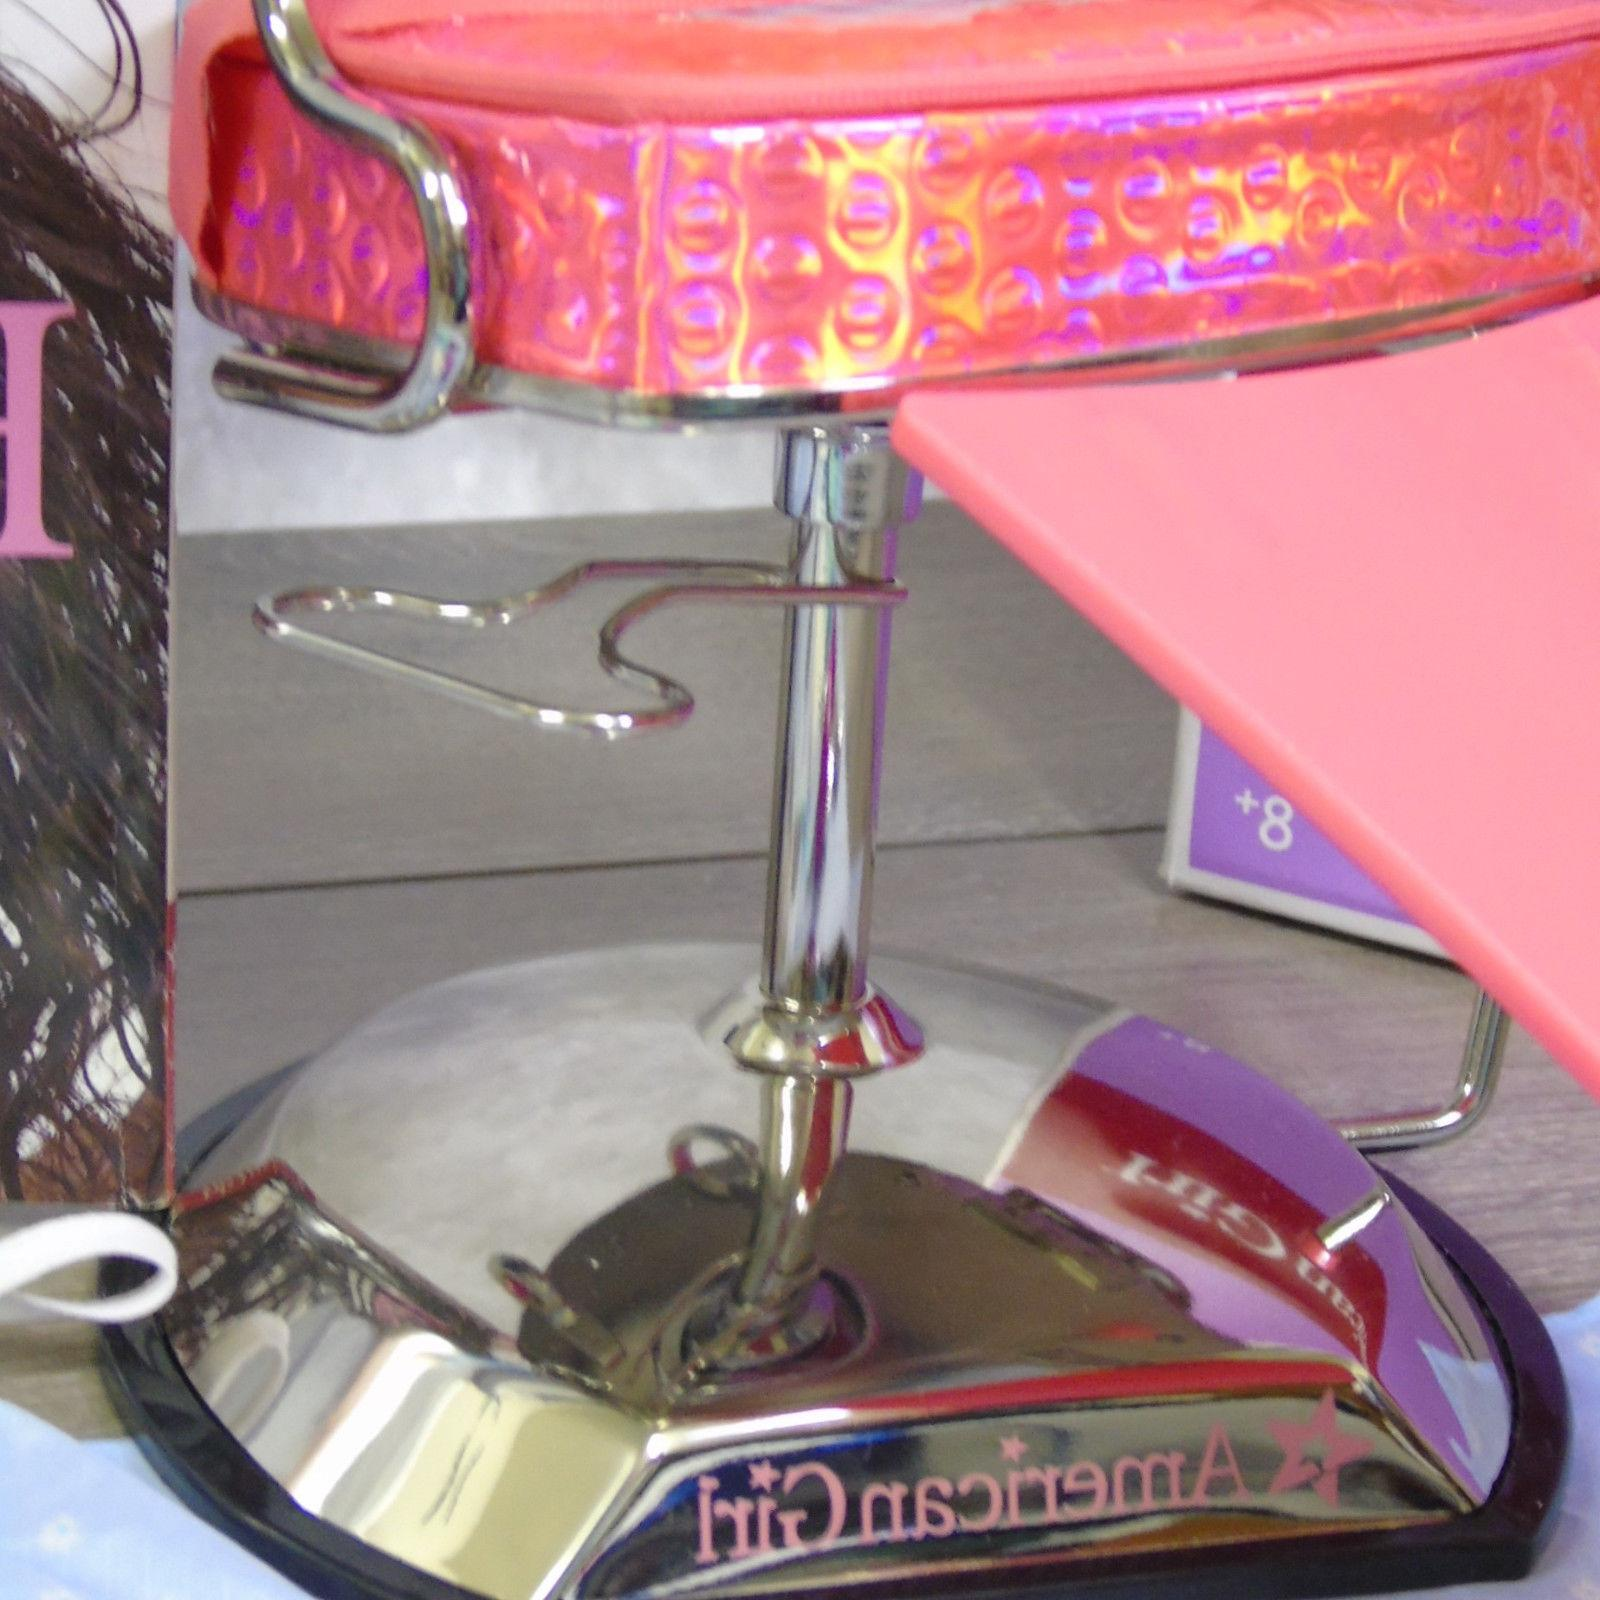 American STYLING SPA & ACCESSORIES Blow Dryer +